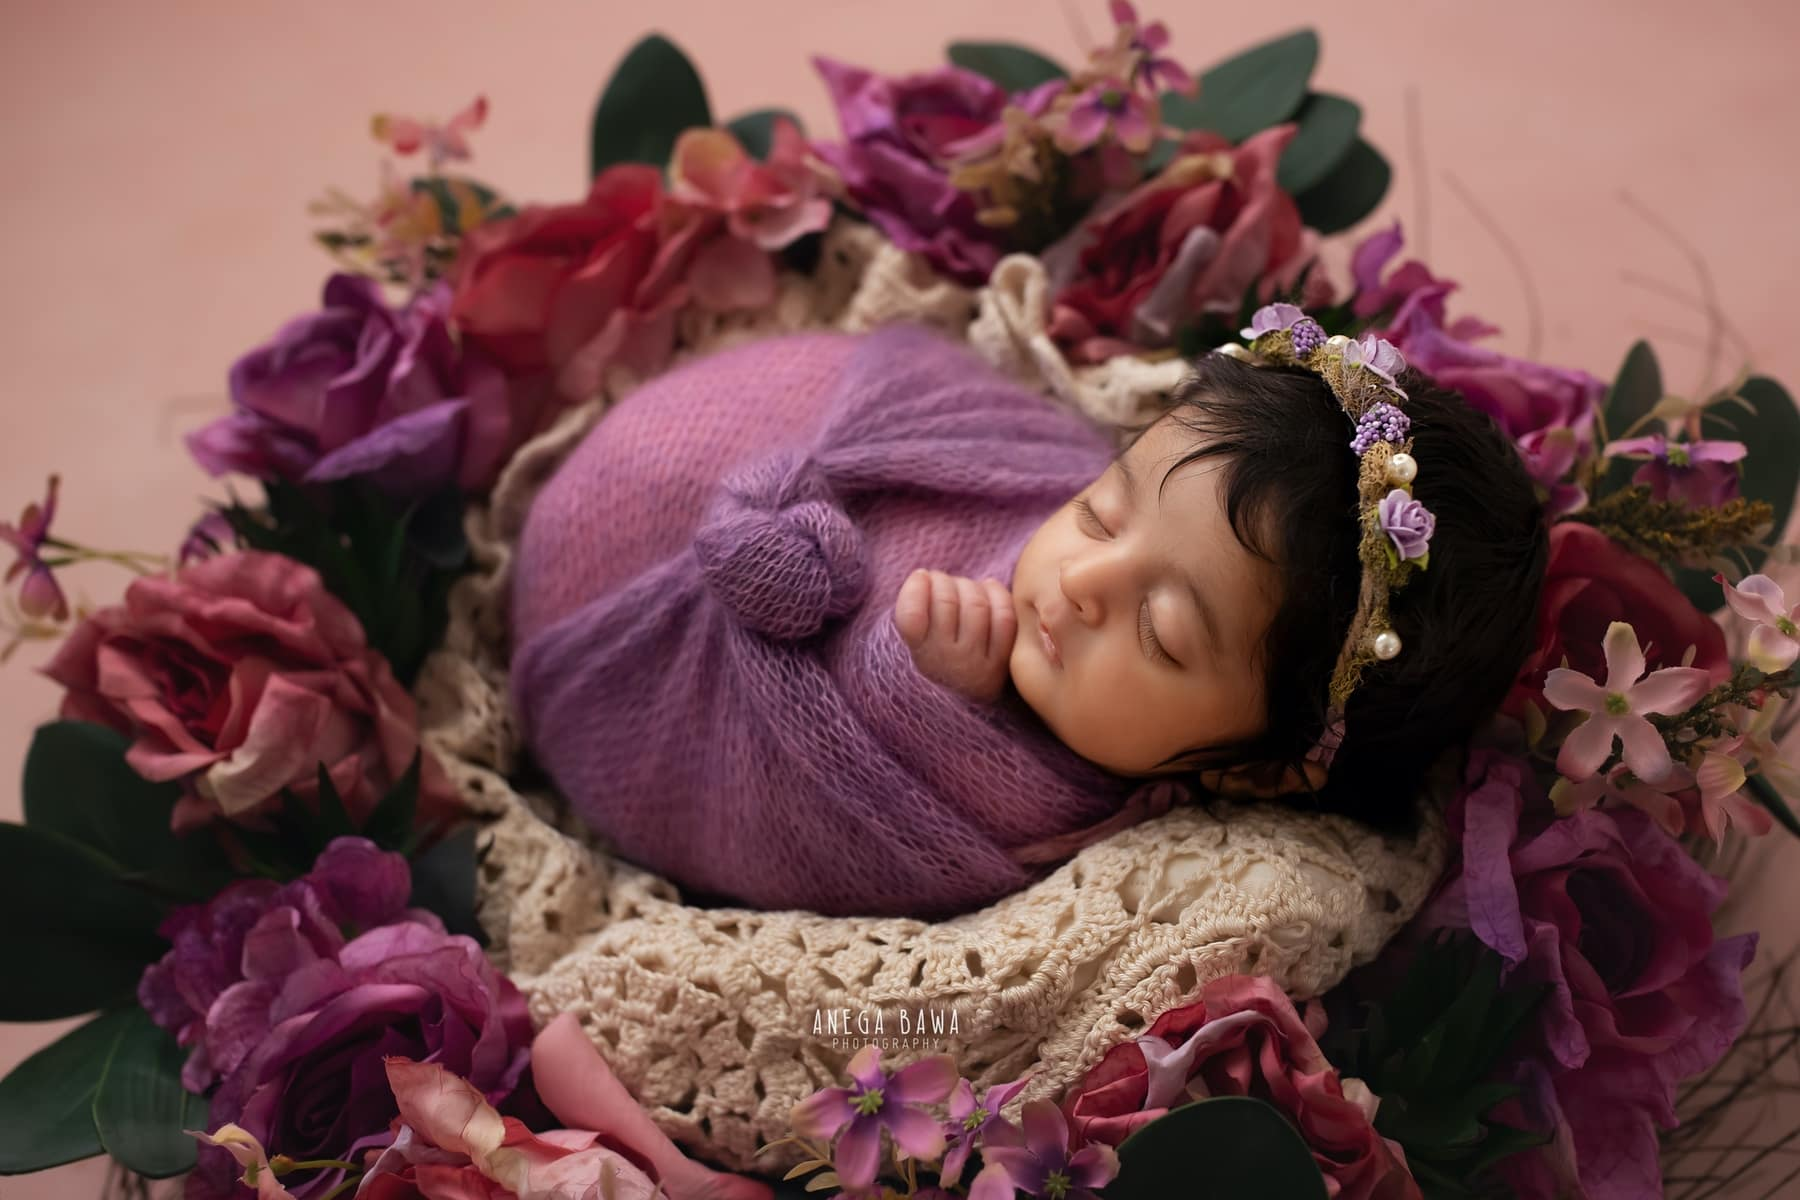 pink floral newborn photography delhi 9 days baby girl photoshoot gurgaon anega bawa